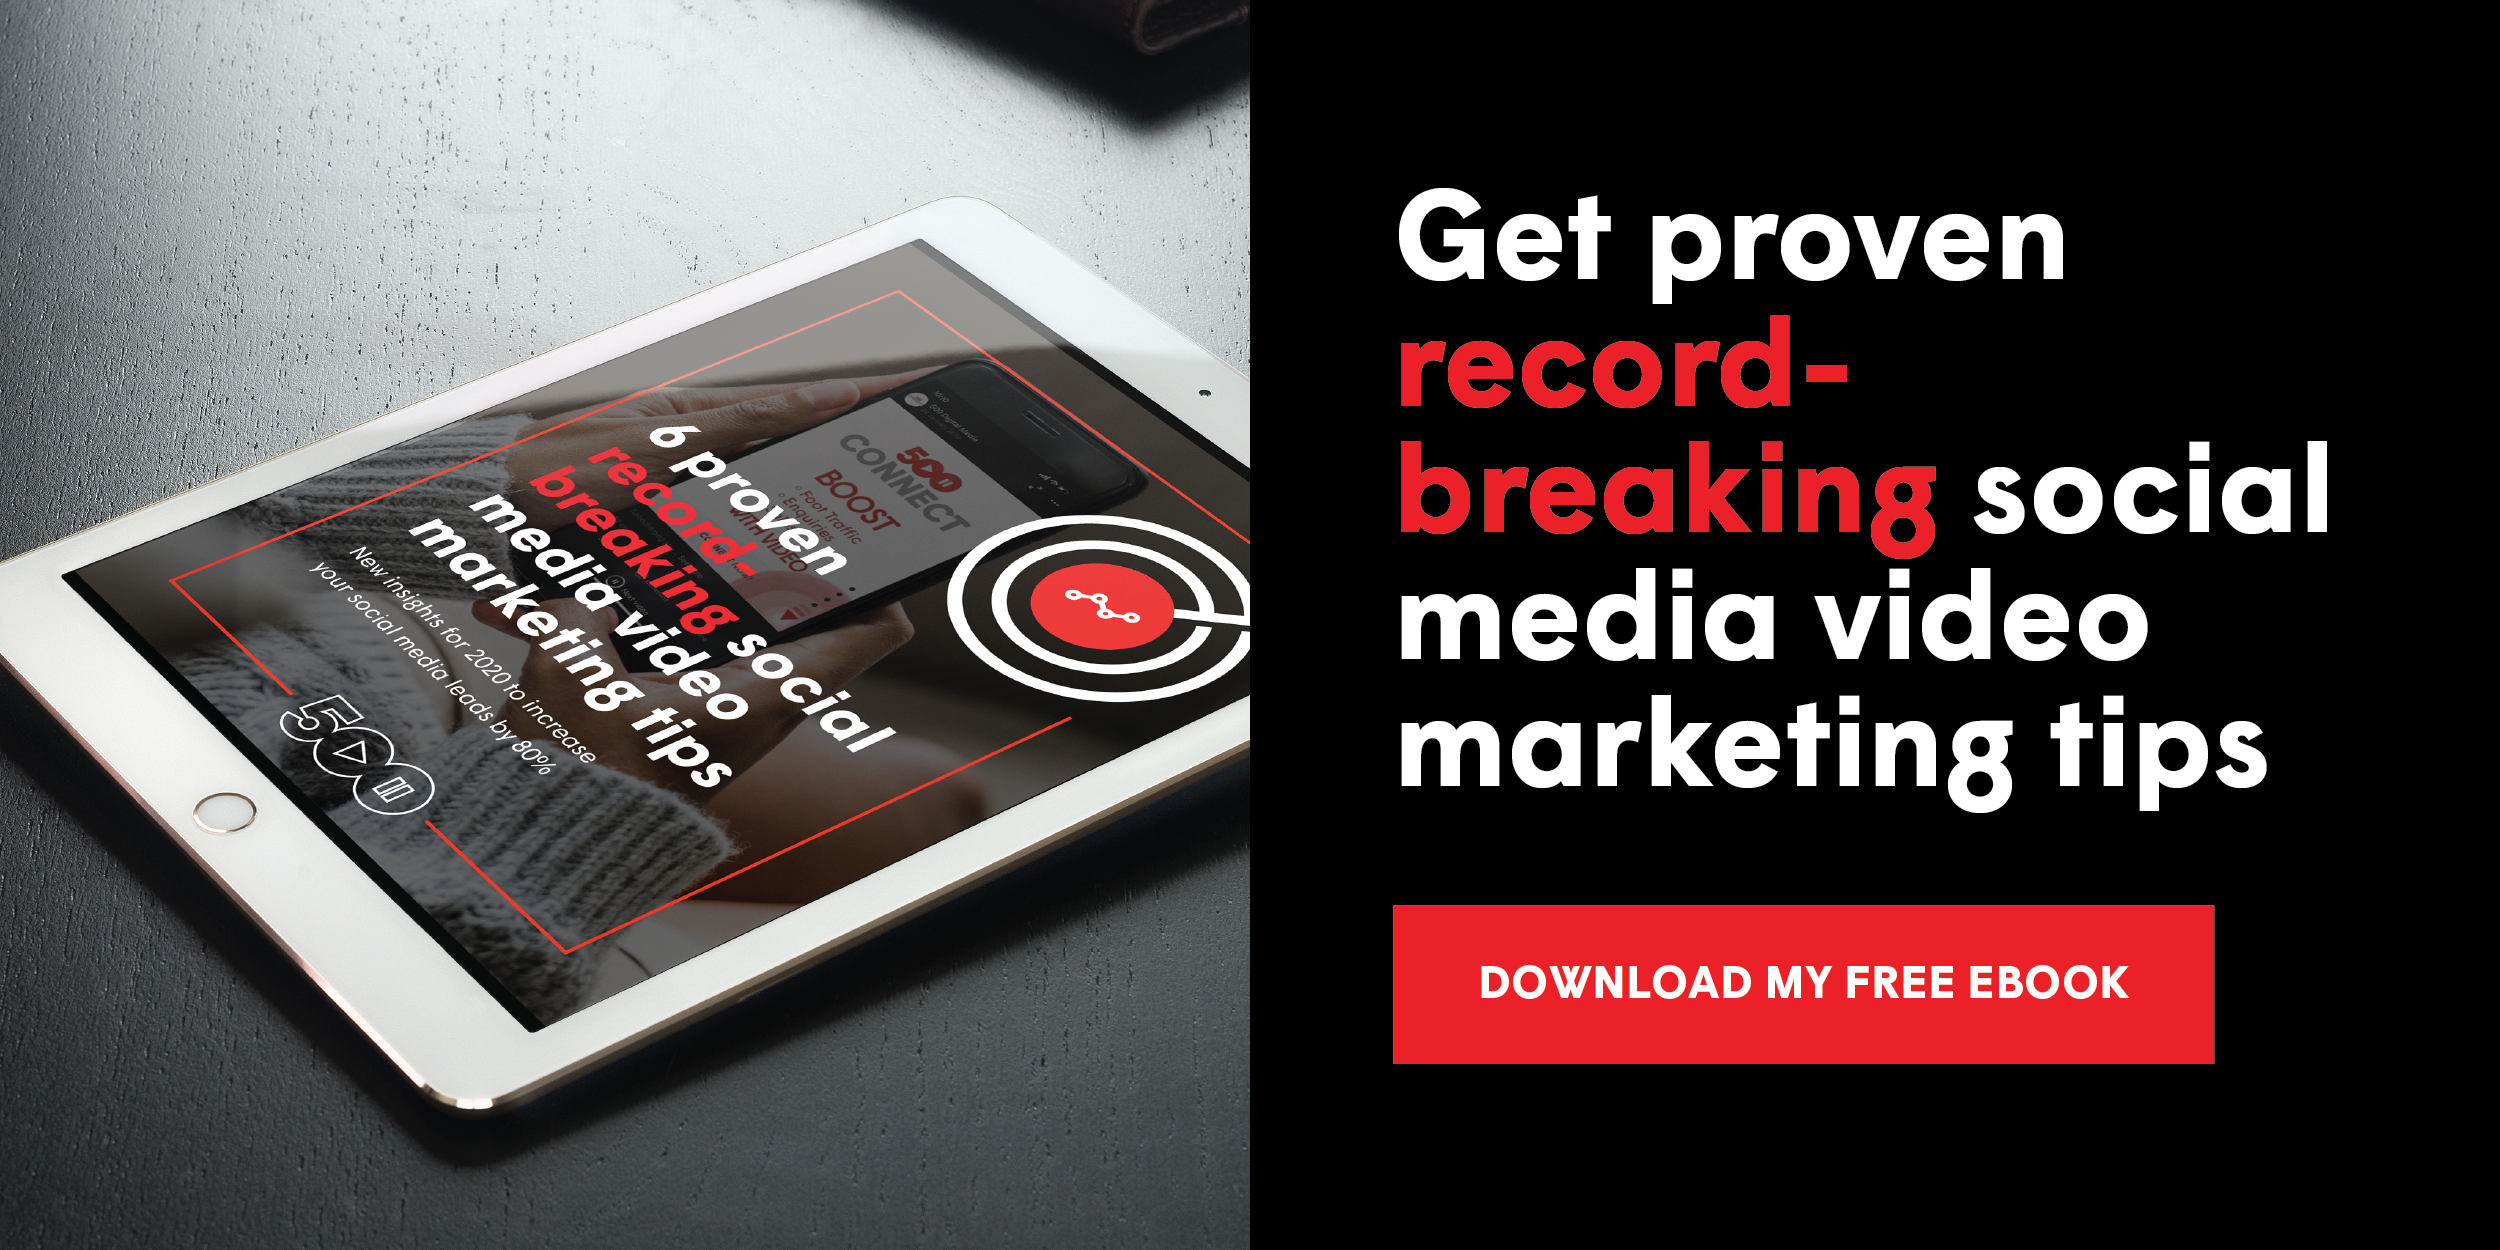 Get proven record-breaking social media video marketing tips: free ebook